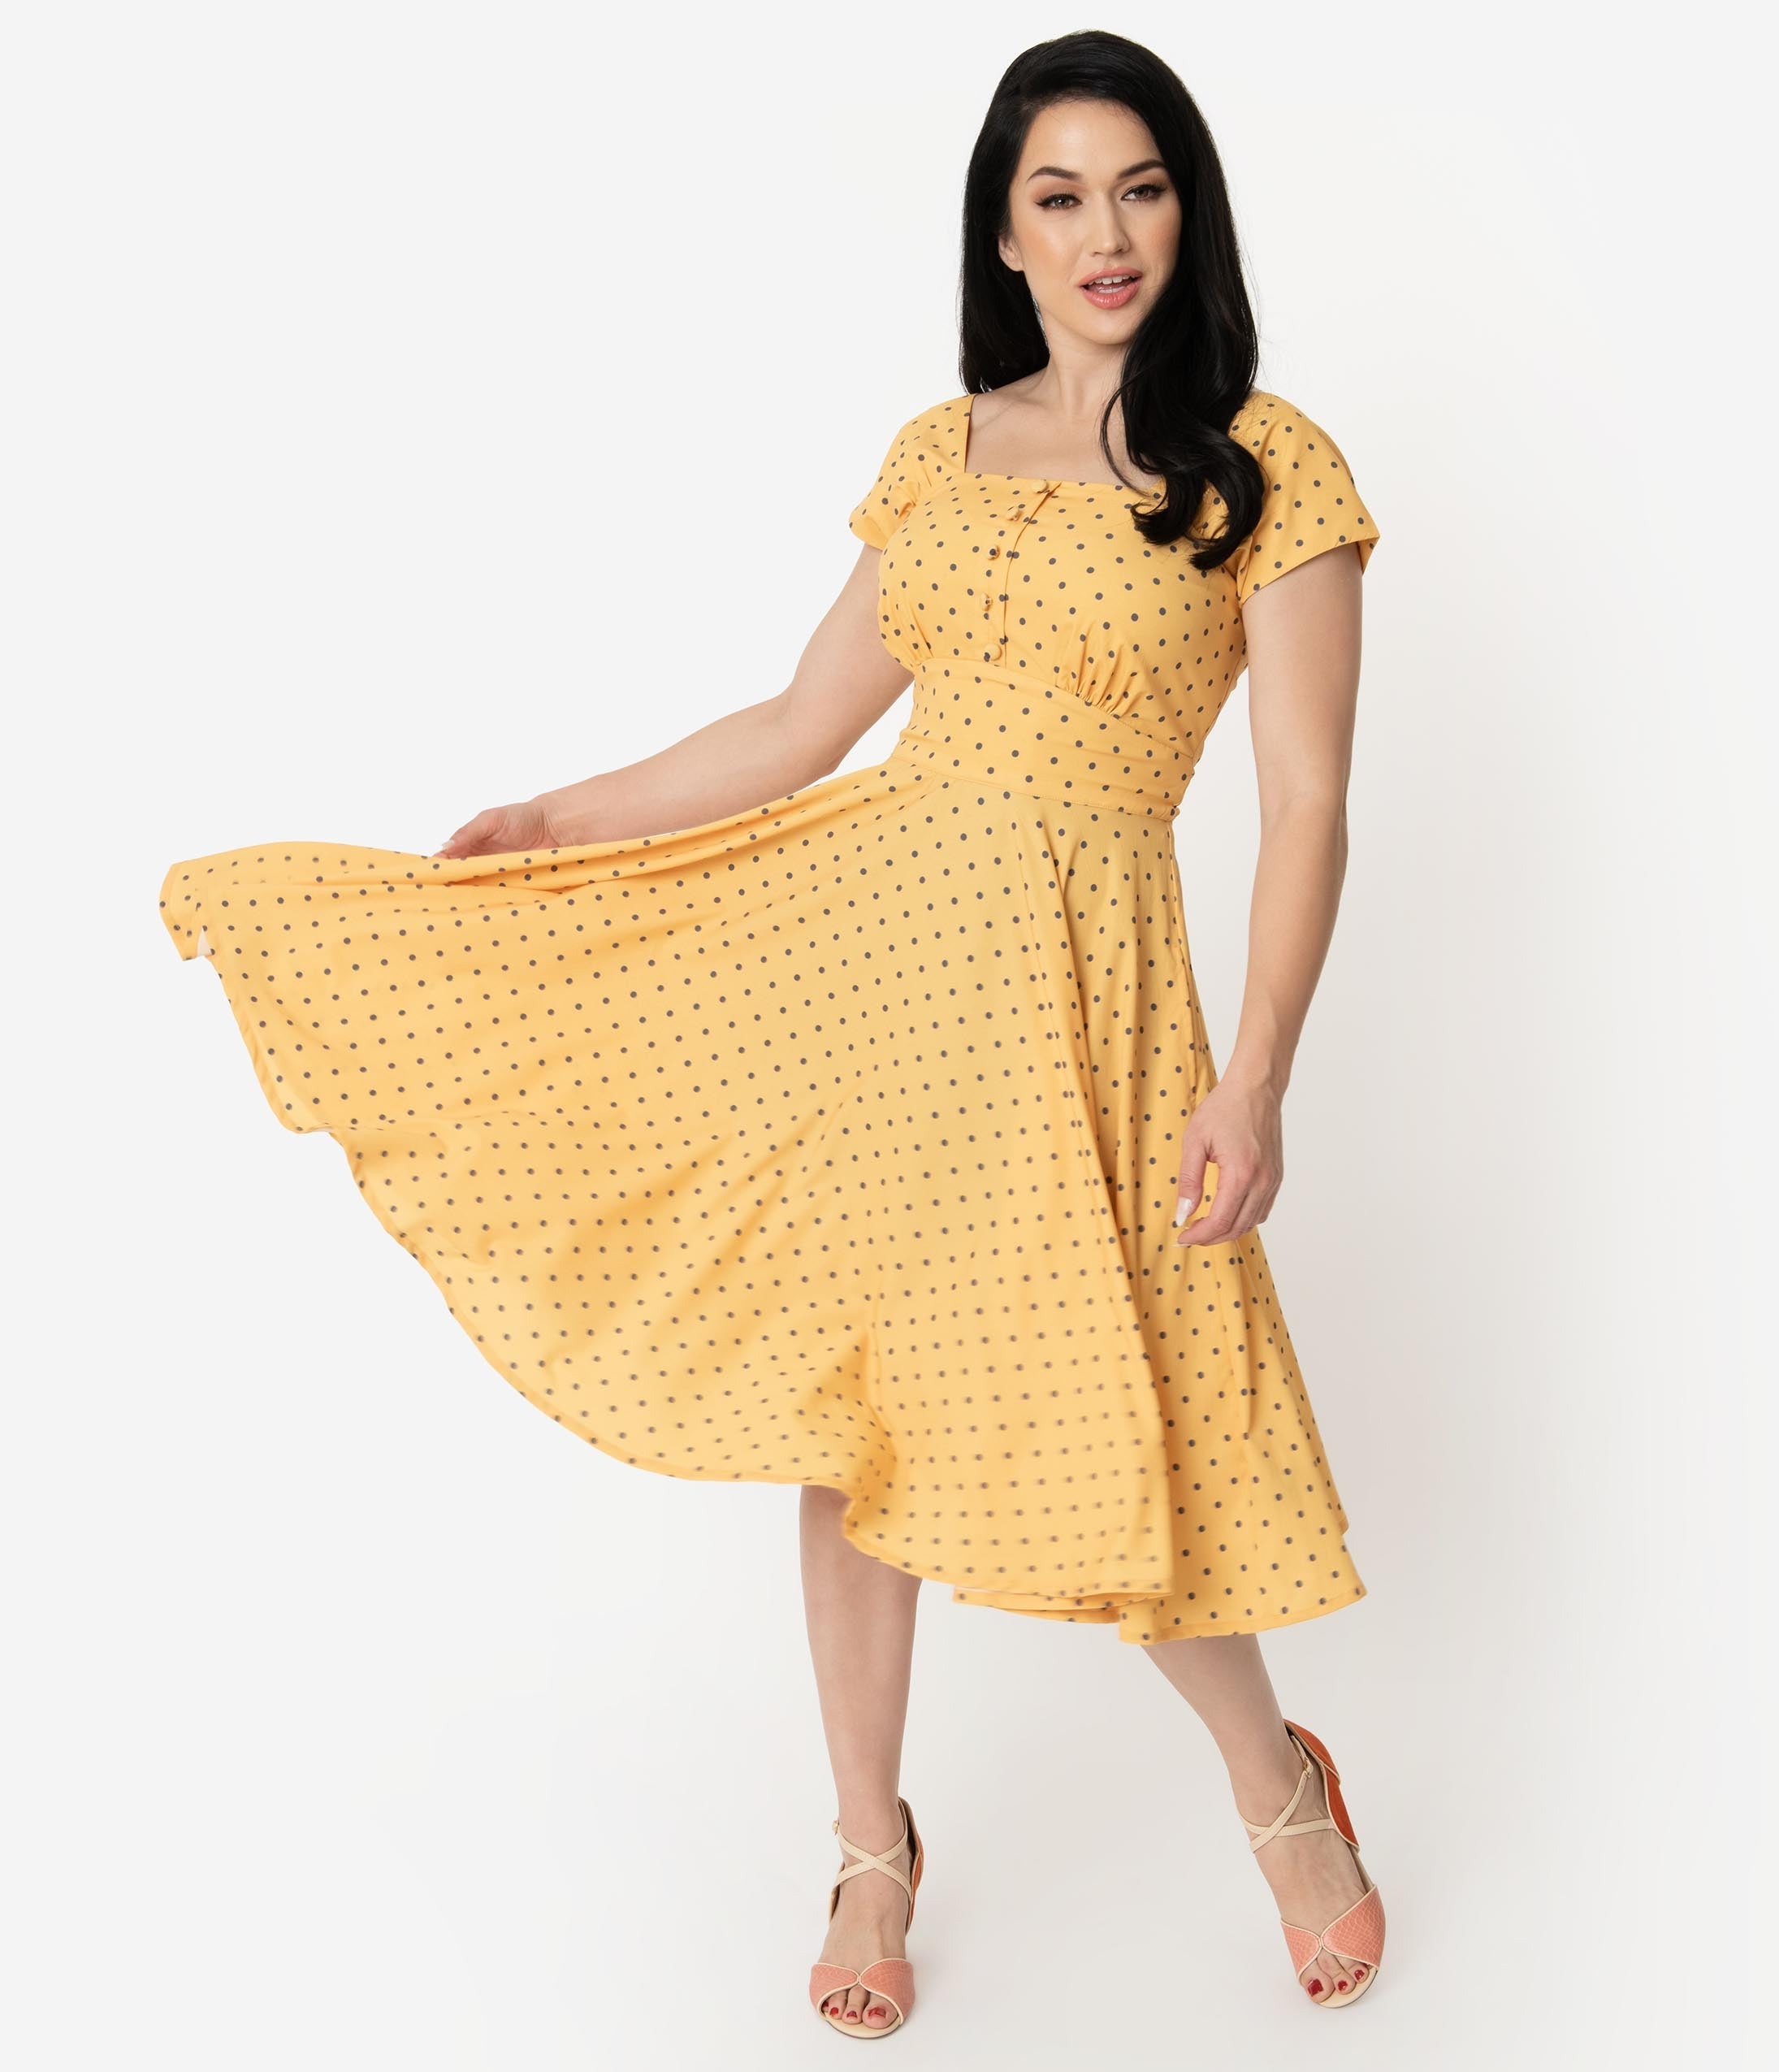 1940s Fashion Advice for Short Women 1940S Style Yellow  Grey Polka Dot Cap Sleeve Zafira Swing Dress $72.00 AT vintagedancer.com